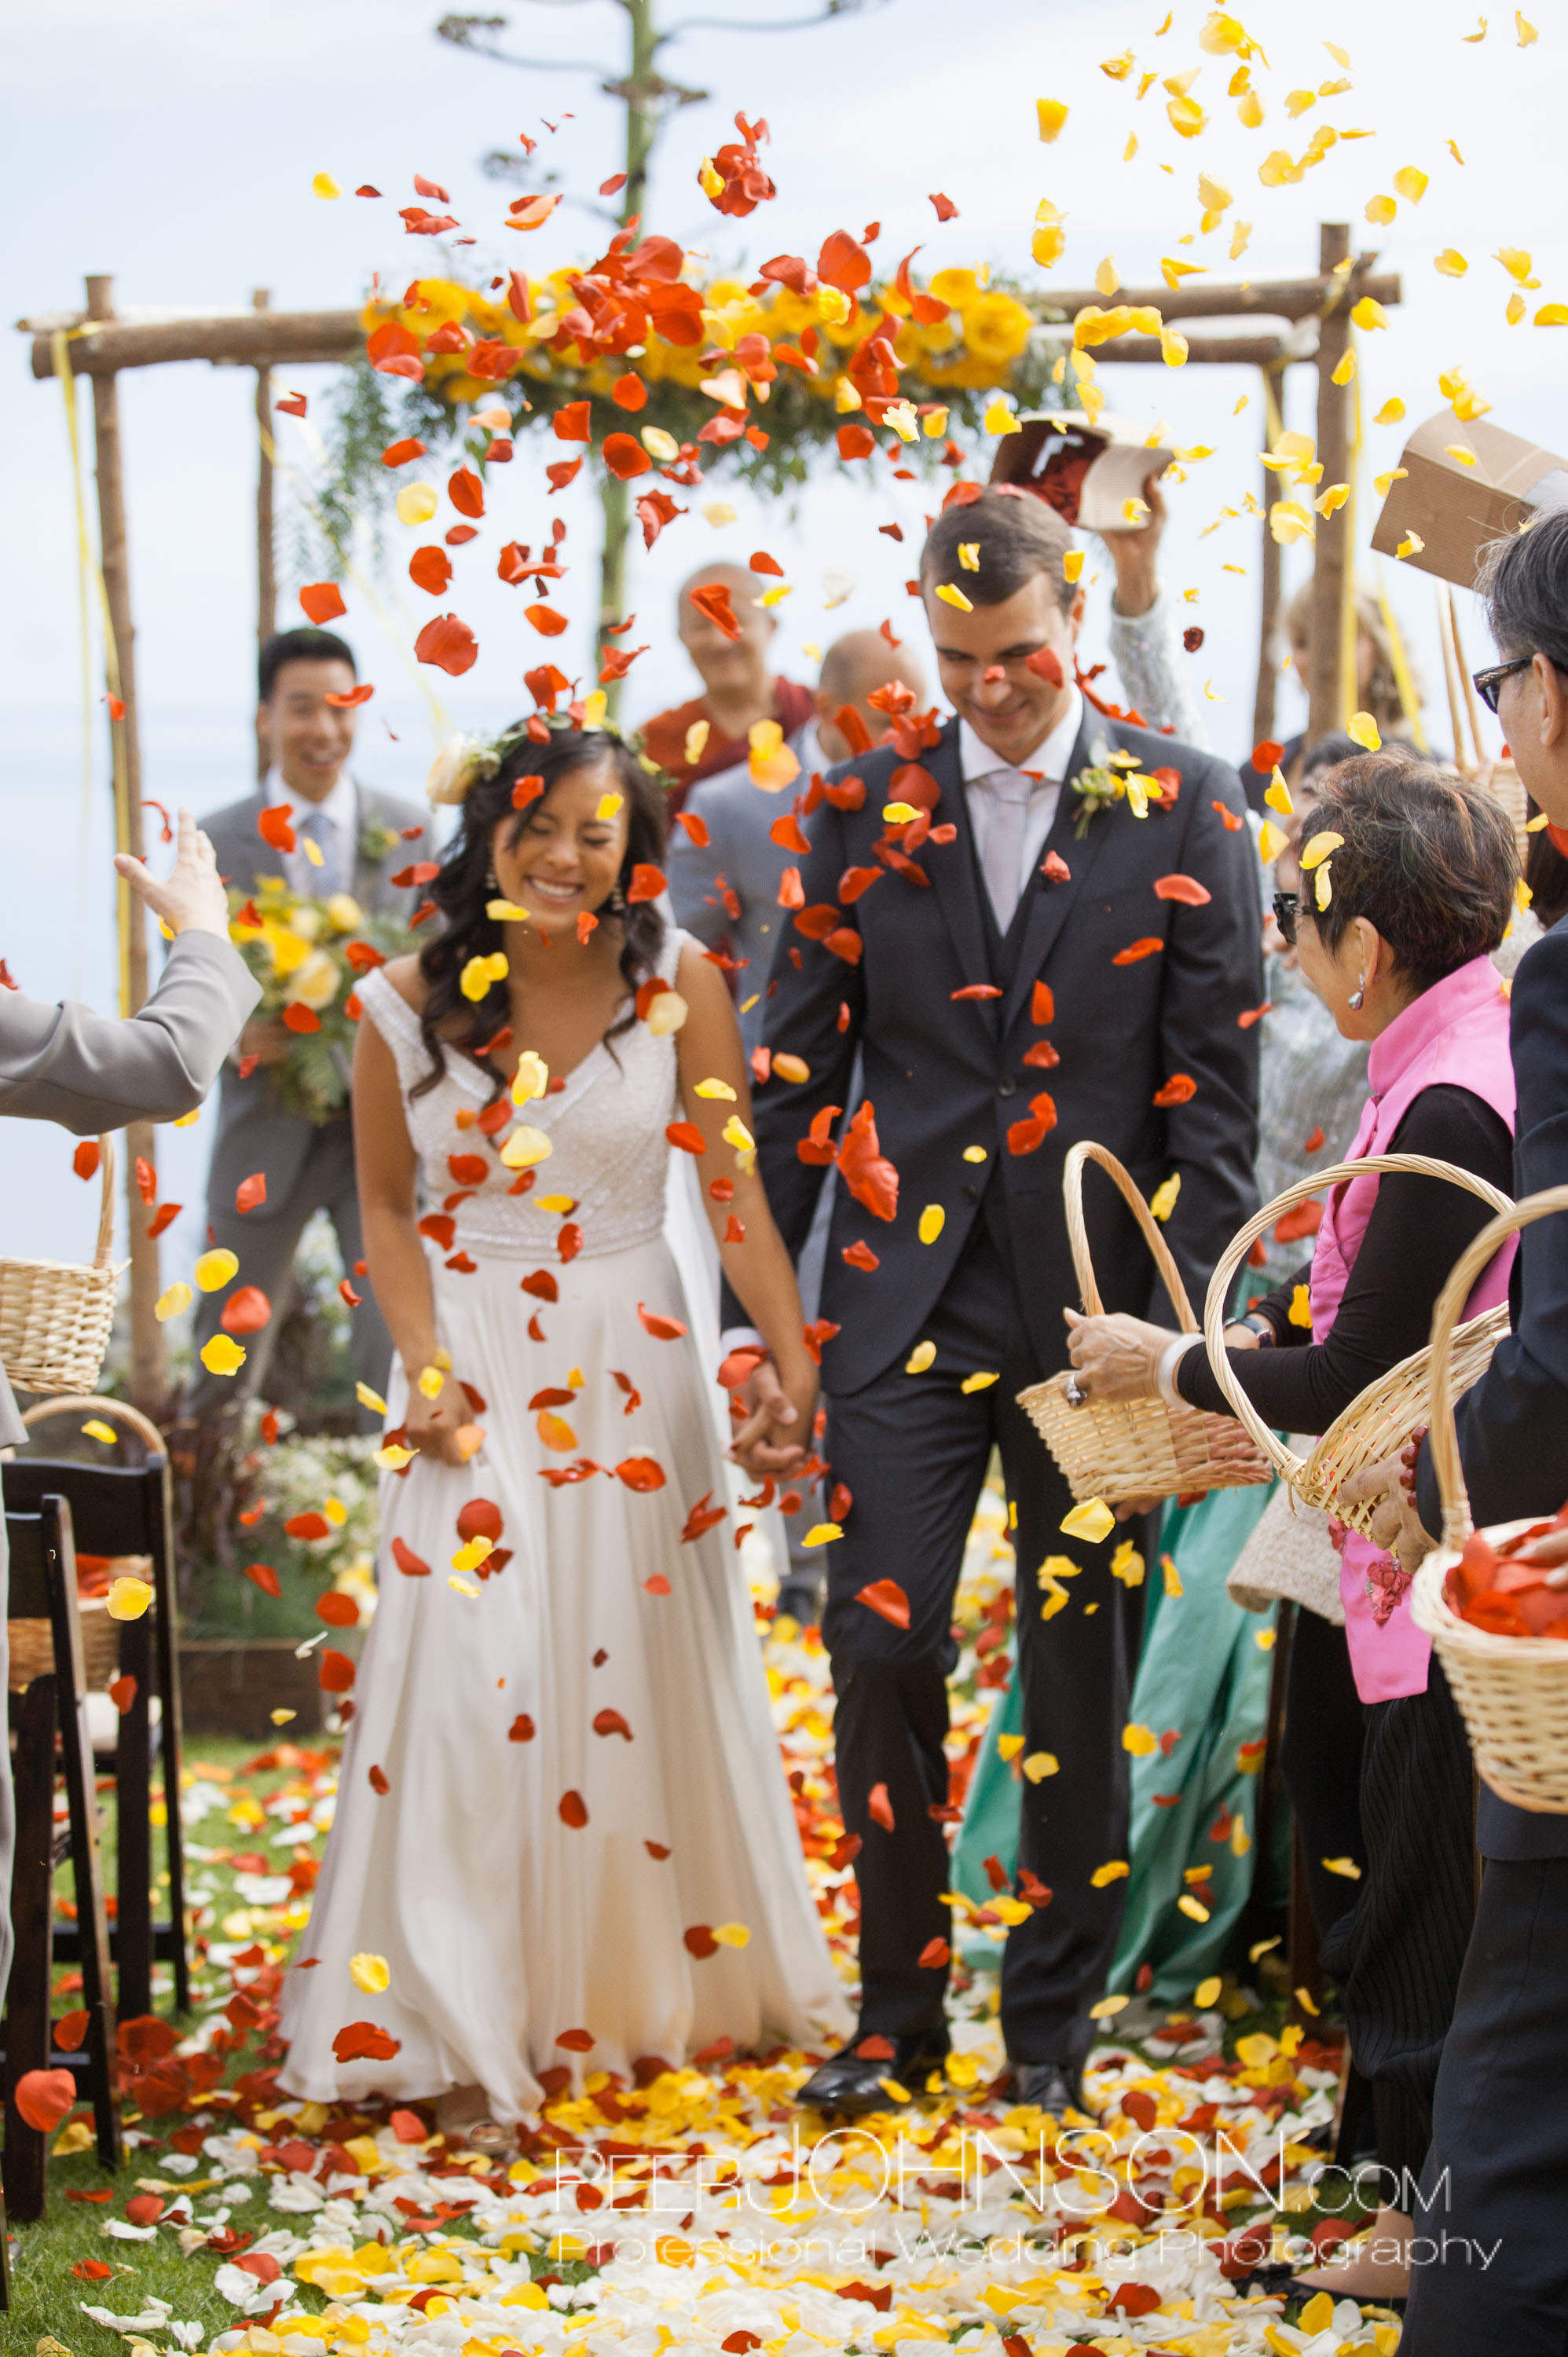 Bride and Groom Showered in Flower Petals